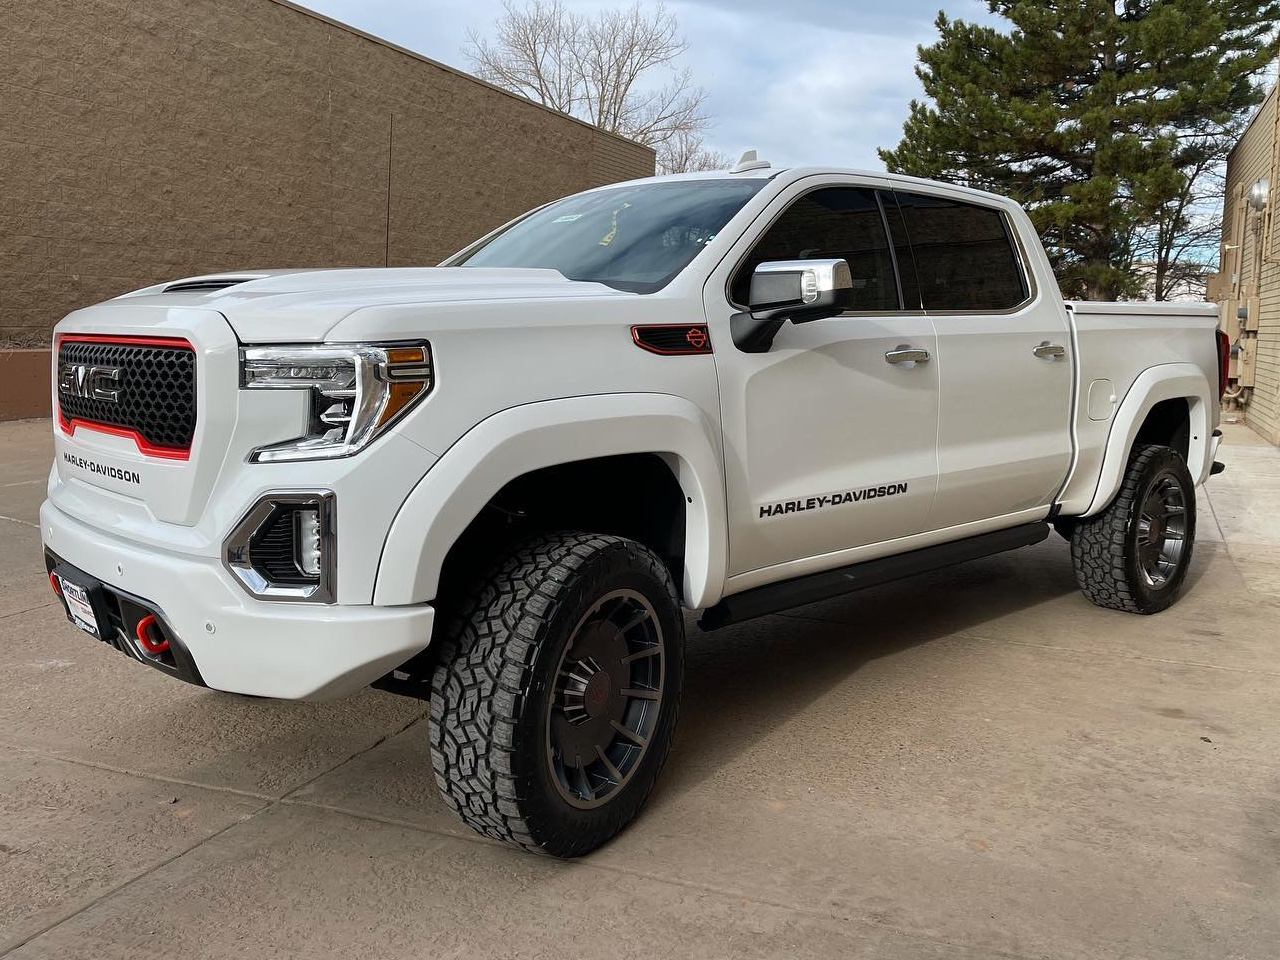 white GMC Harley Davidson tinted windows truck front side view